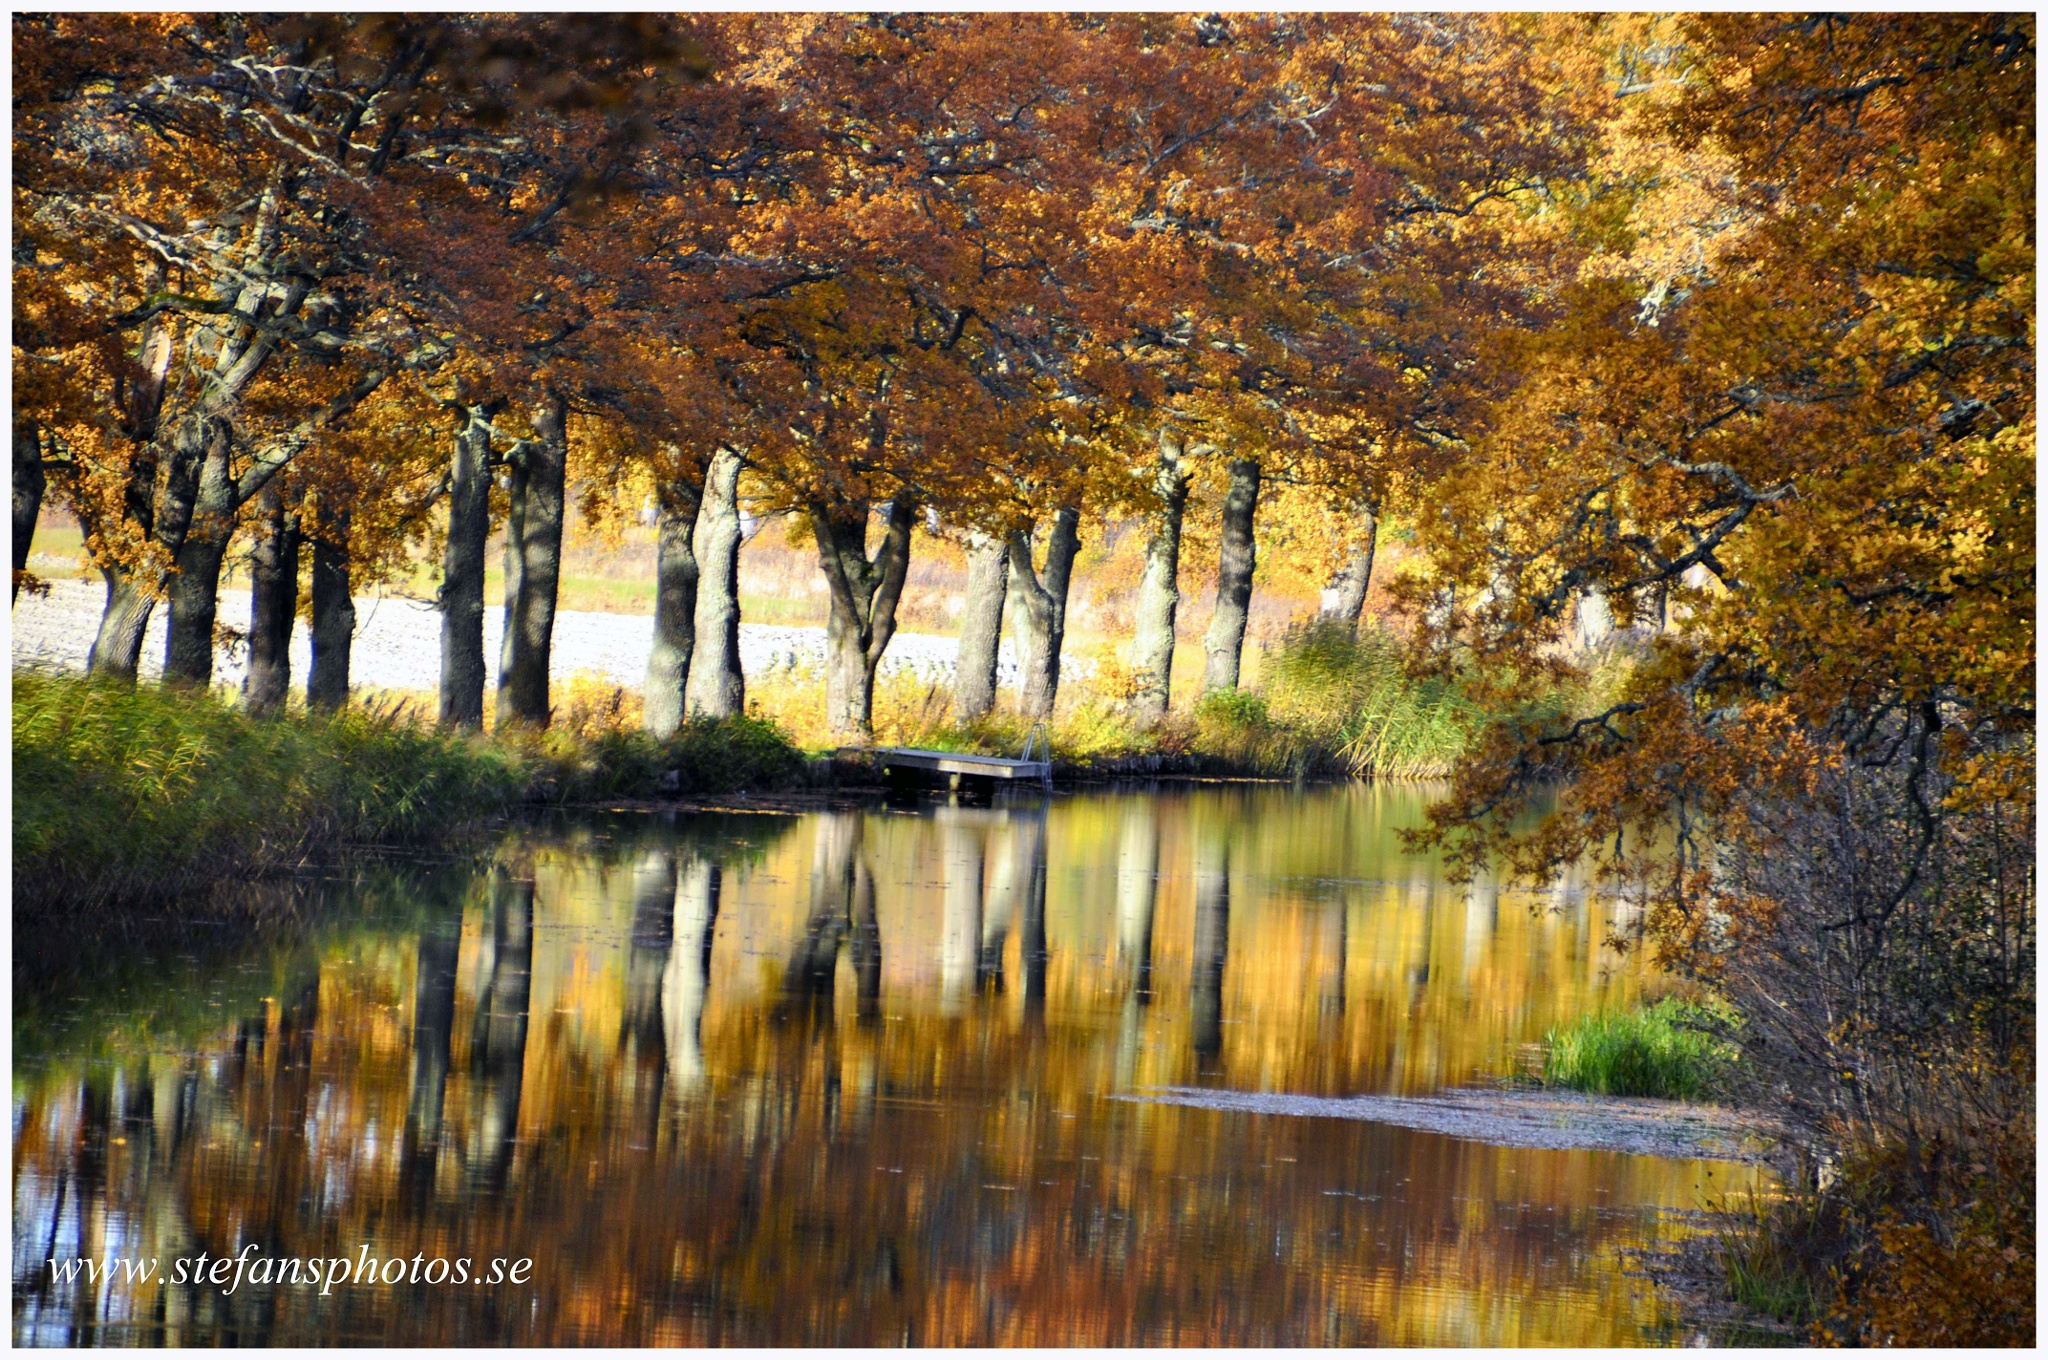 Autumn at The canal by stefan pettersson